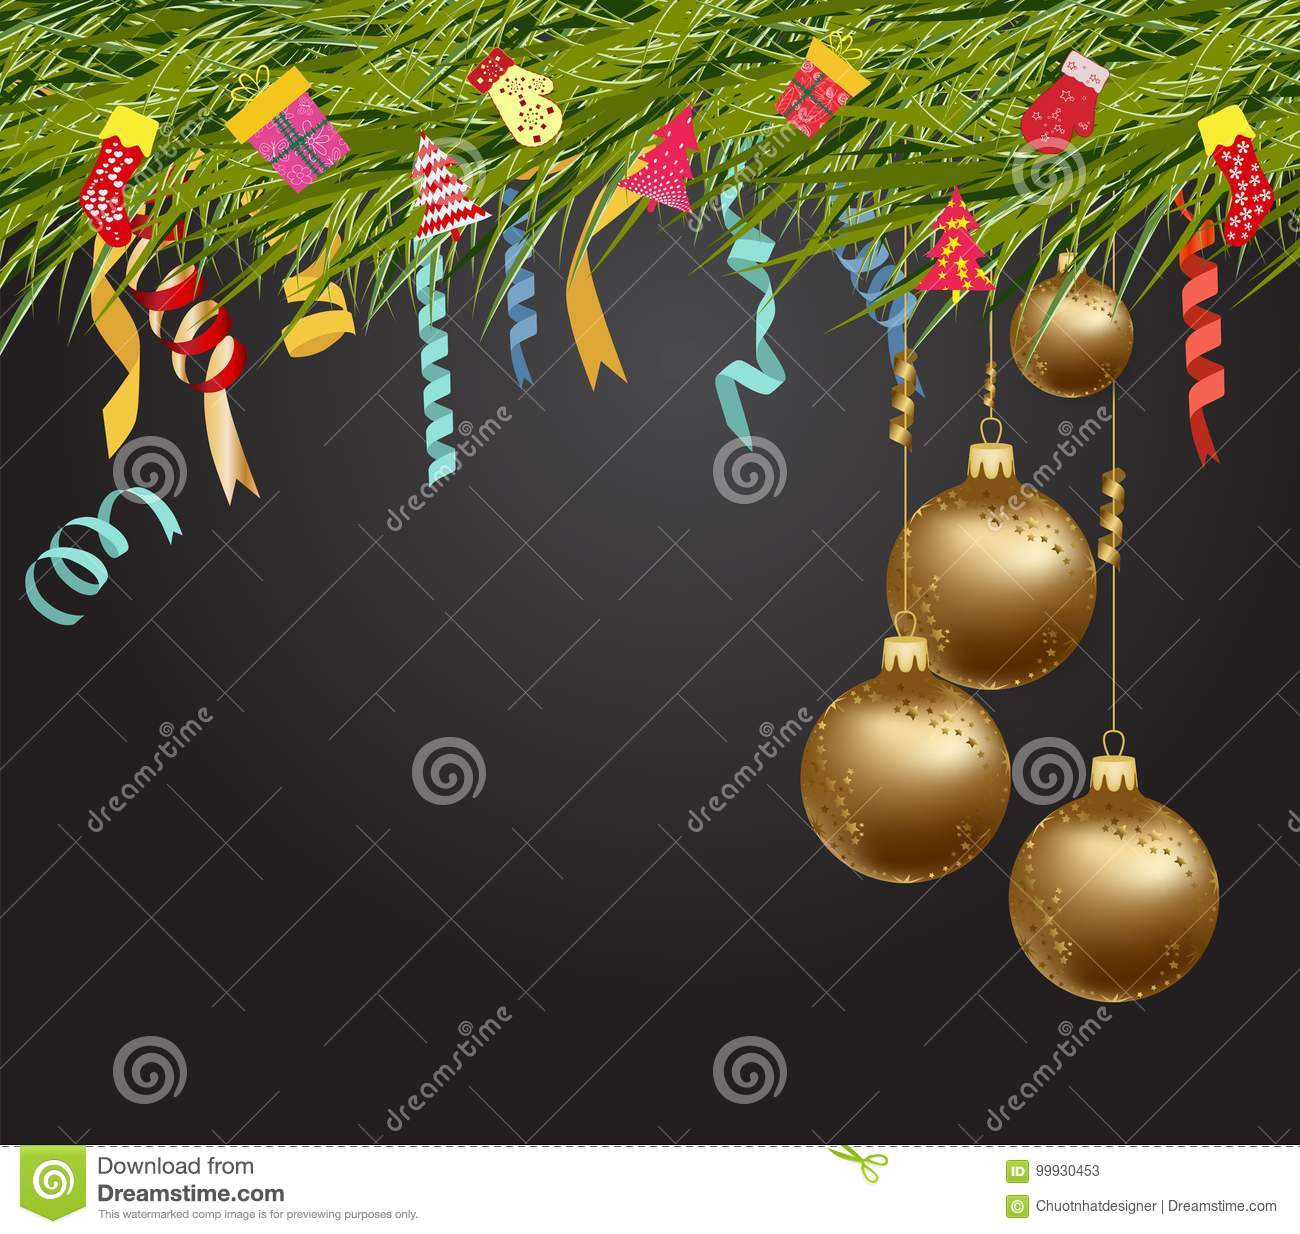 merry christmas and happy new year 2018 wallpaper balls gold download preview